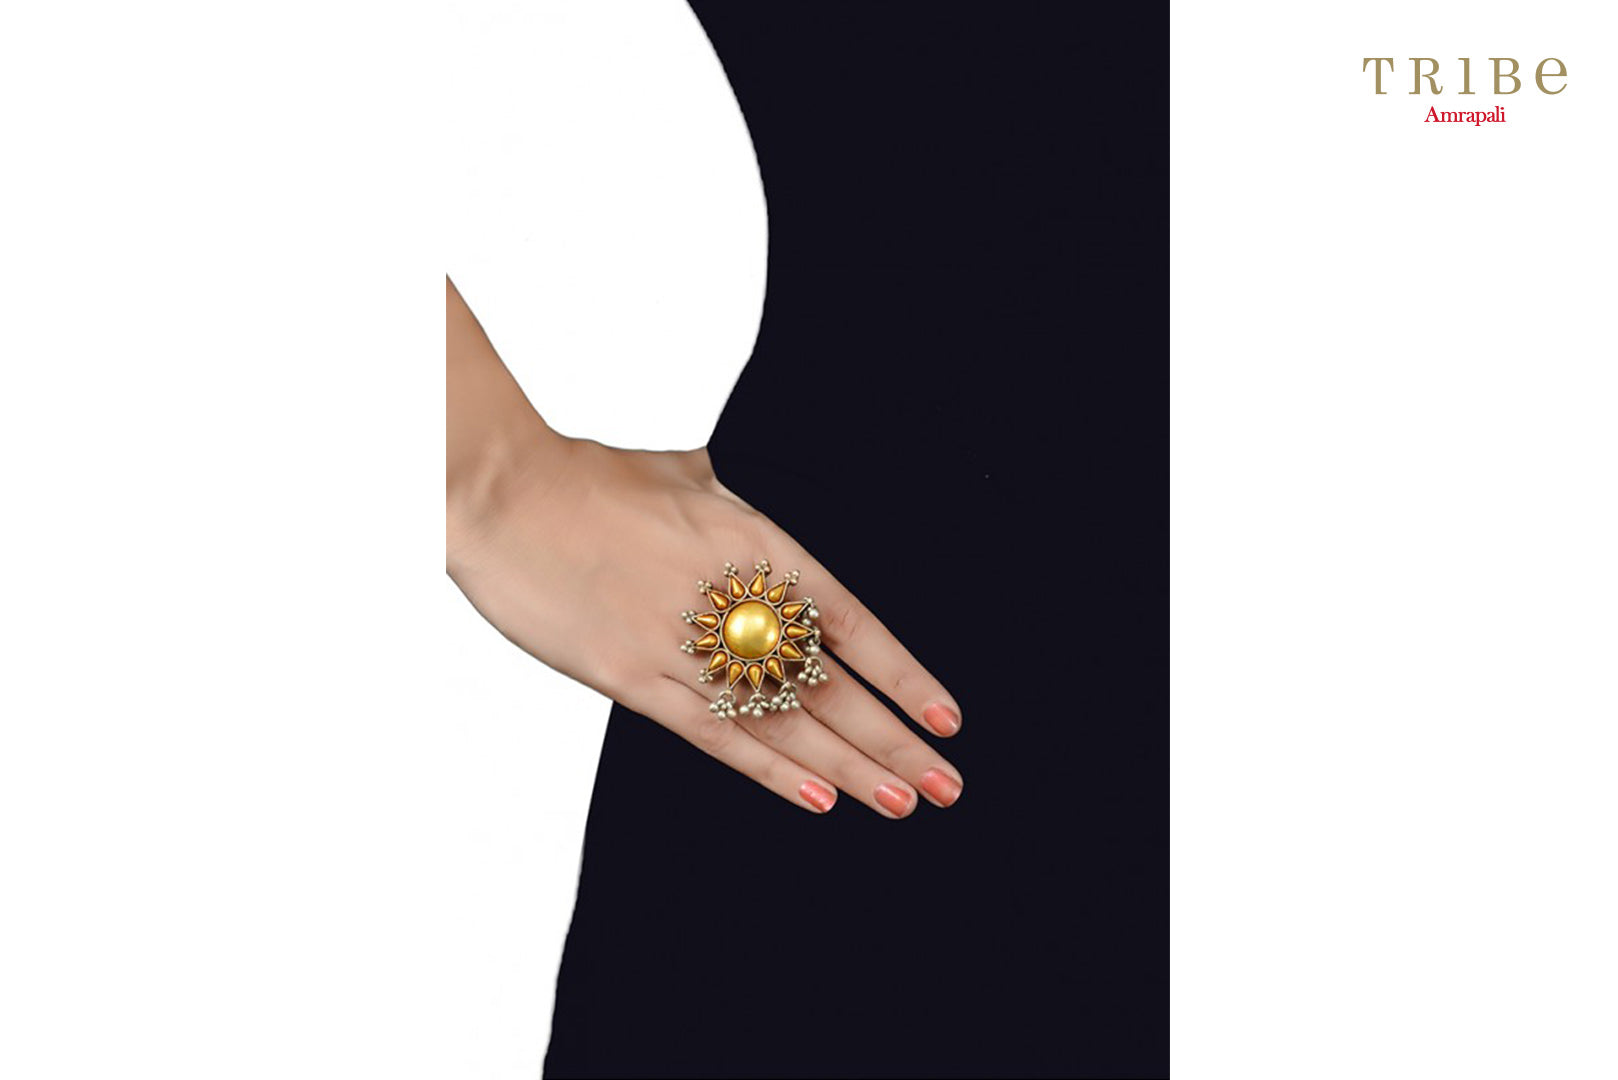 Tribe Amrapali beautiful two tone silver flower ring buy online in USA.  If you are looking for Indian silver gold plated jewelry in USA, then Pure Elegance clothing store is your one stop solution, shop now.-hand view